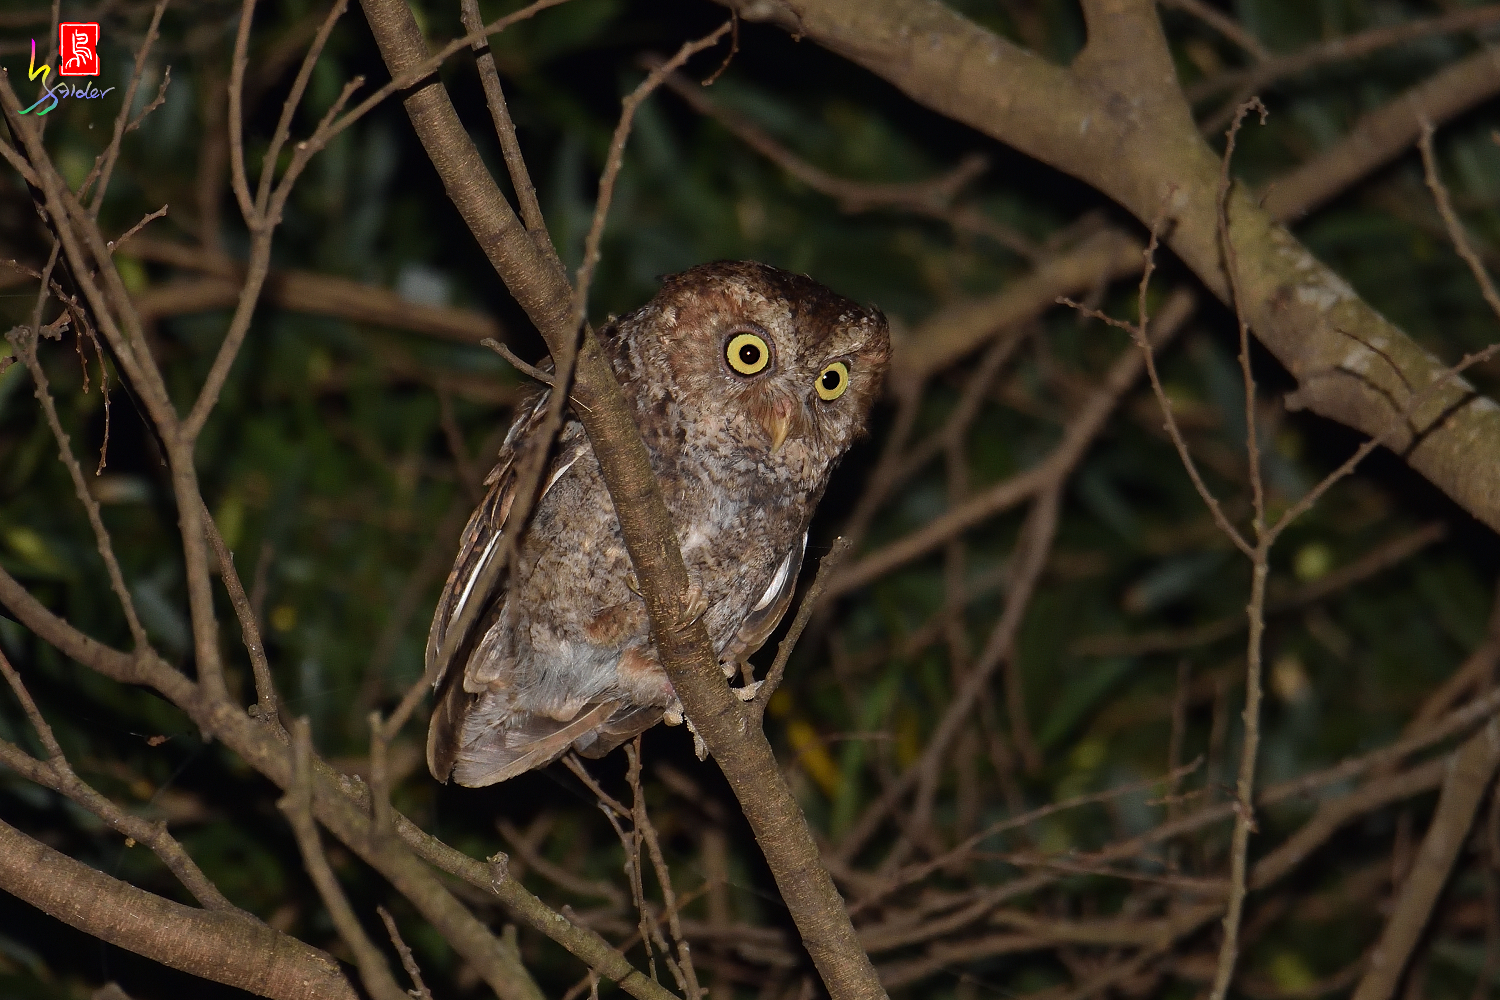 Moutain_Scops_Owl_3529_Redeye